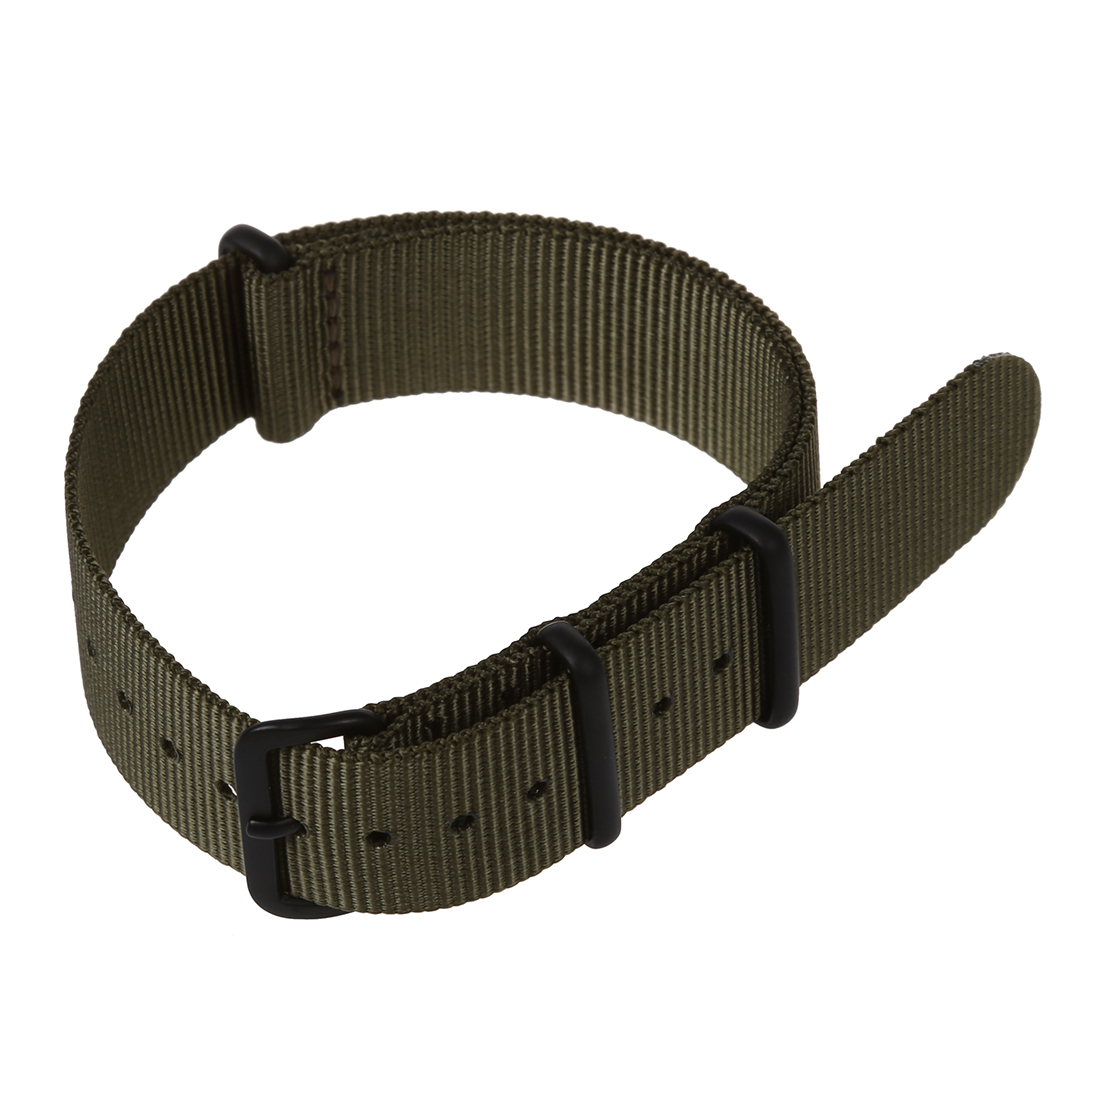 20mm Army Green Nylon Fabric Outdoor Sport Watch Band Strap Fits TIMEX WEEKENDER WB2034